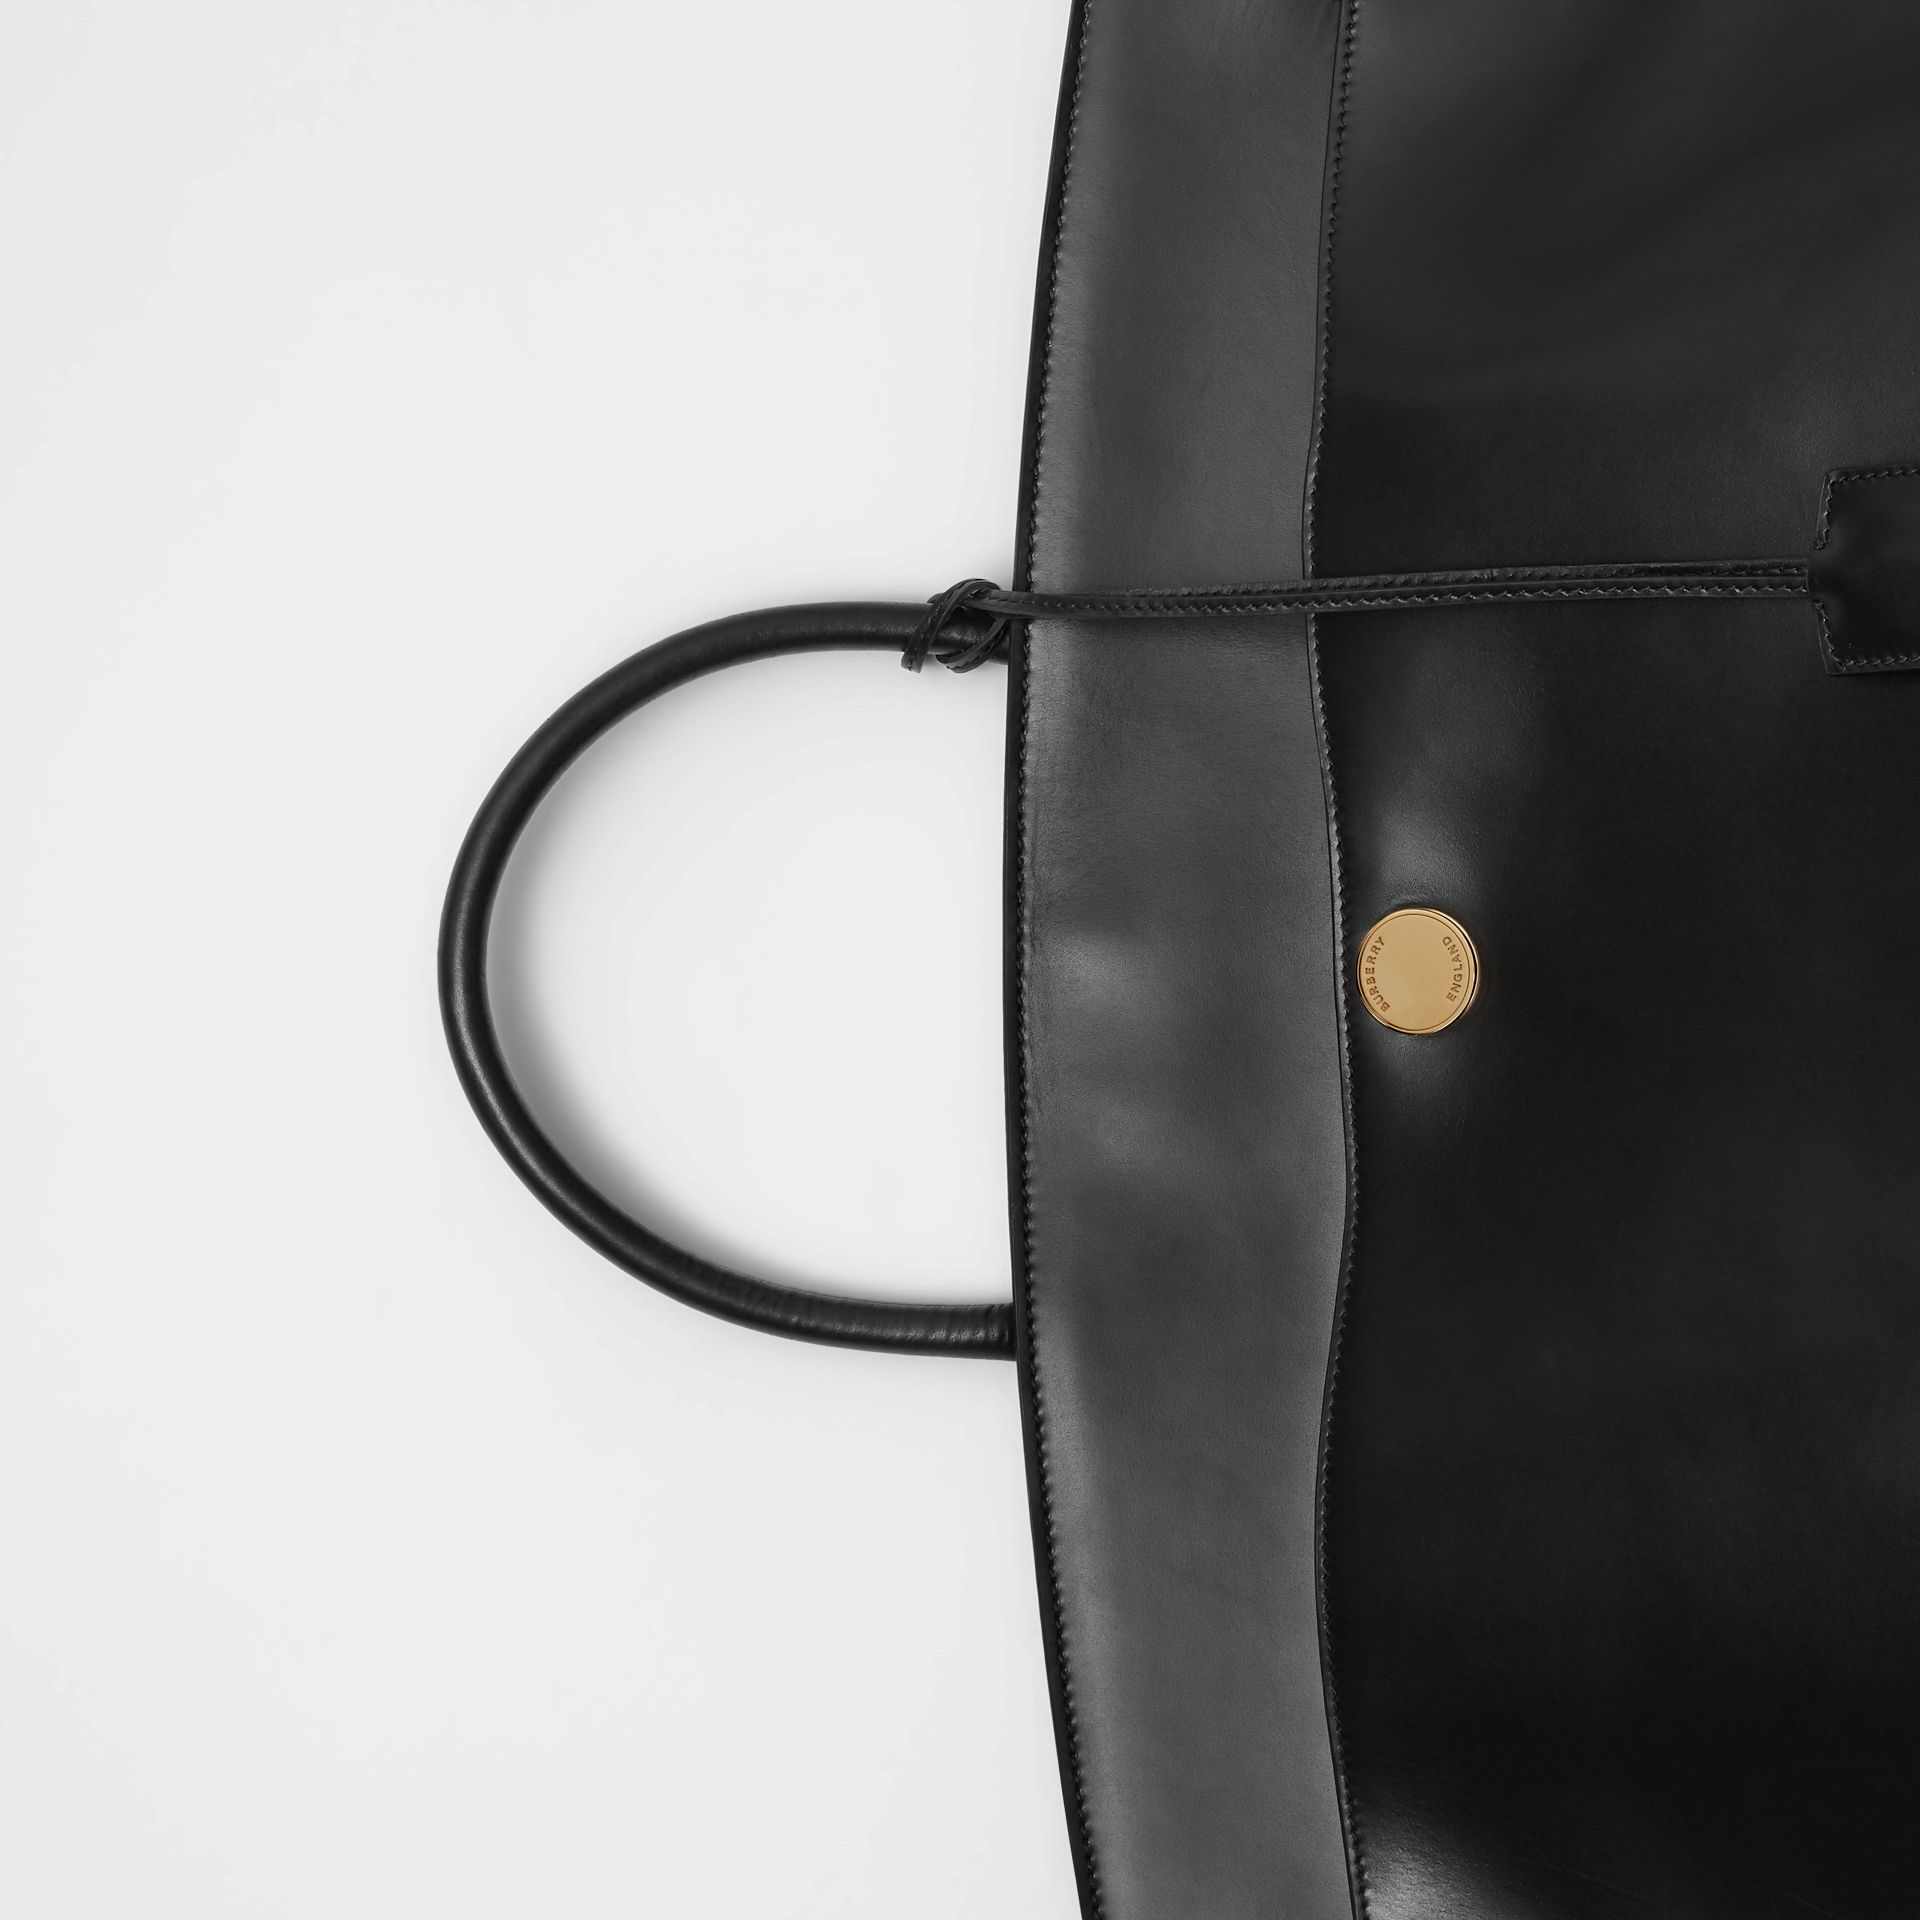 Leather Society Top Handle Bag in Black - Women | Burberry United States - gallery image 1